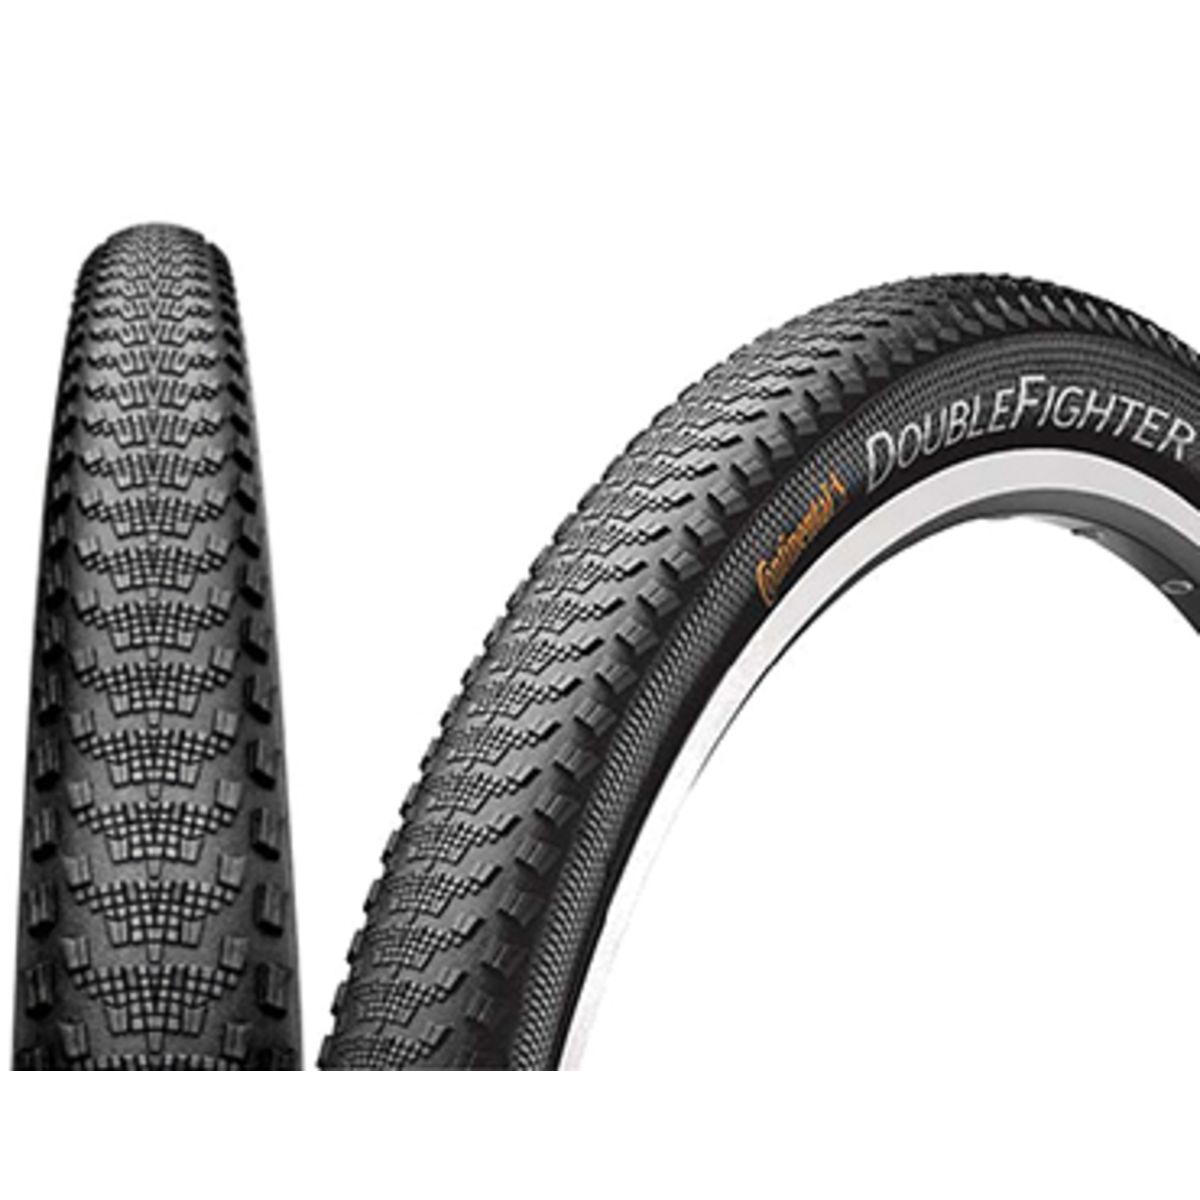 Continental Bike Tires >> Continental Double Fighter Iii Sport Mtb Tyre Clincher